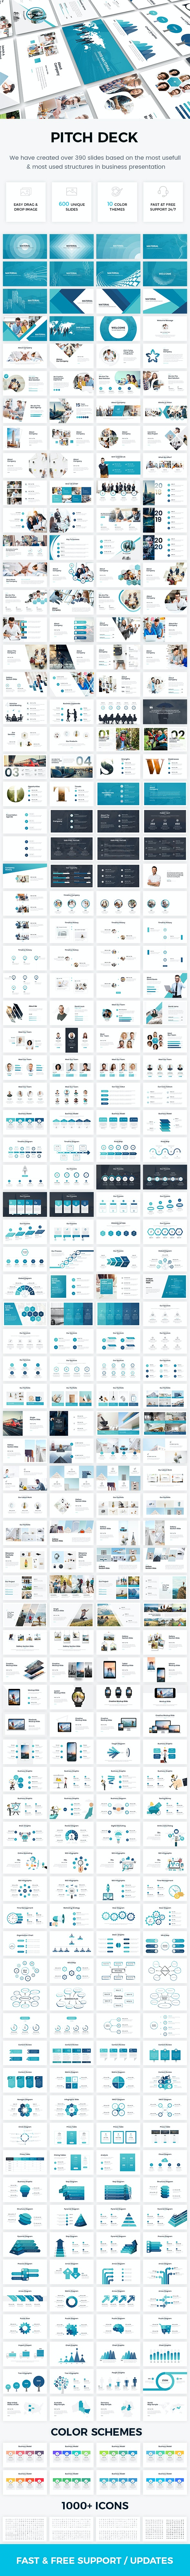 Bundle 2 in 1 Startup Pitch Deck Powerpoint Template - Business PowerPoint Templates